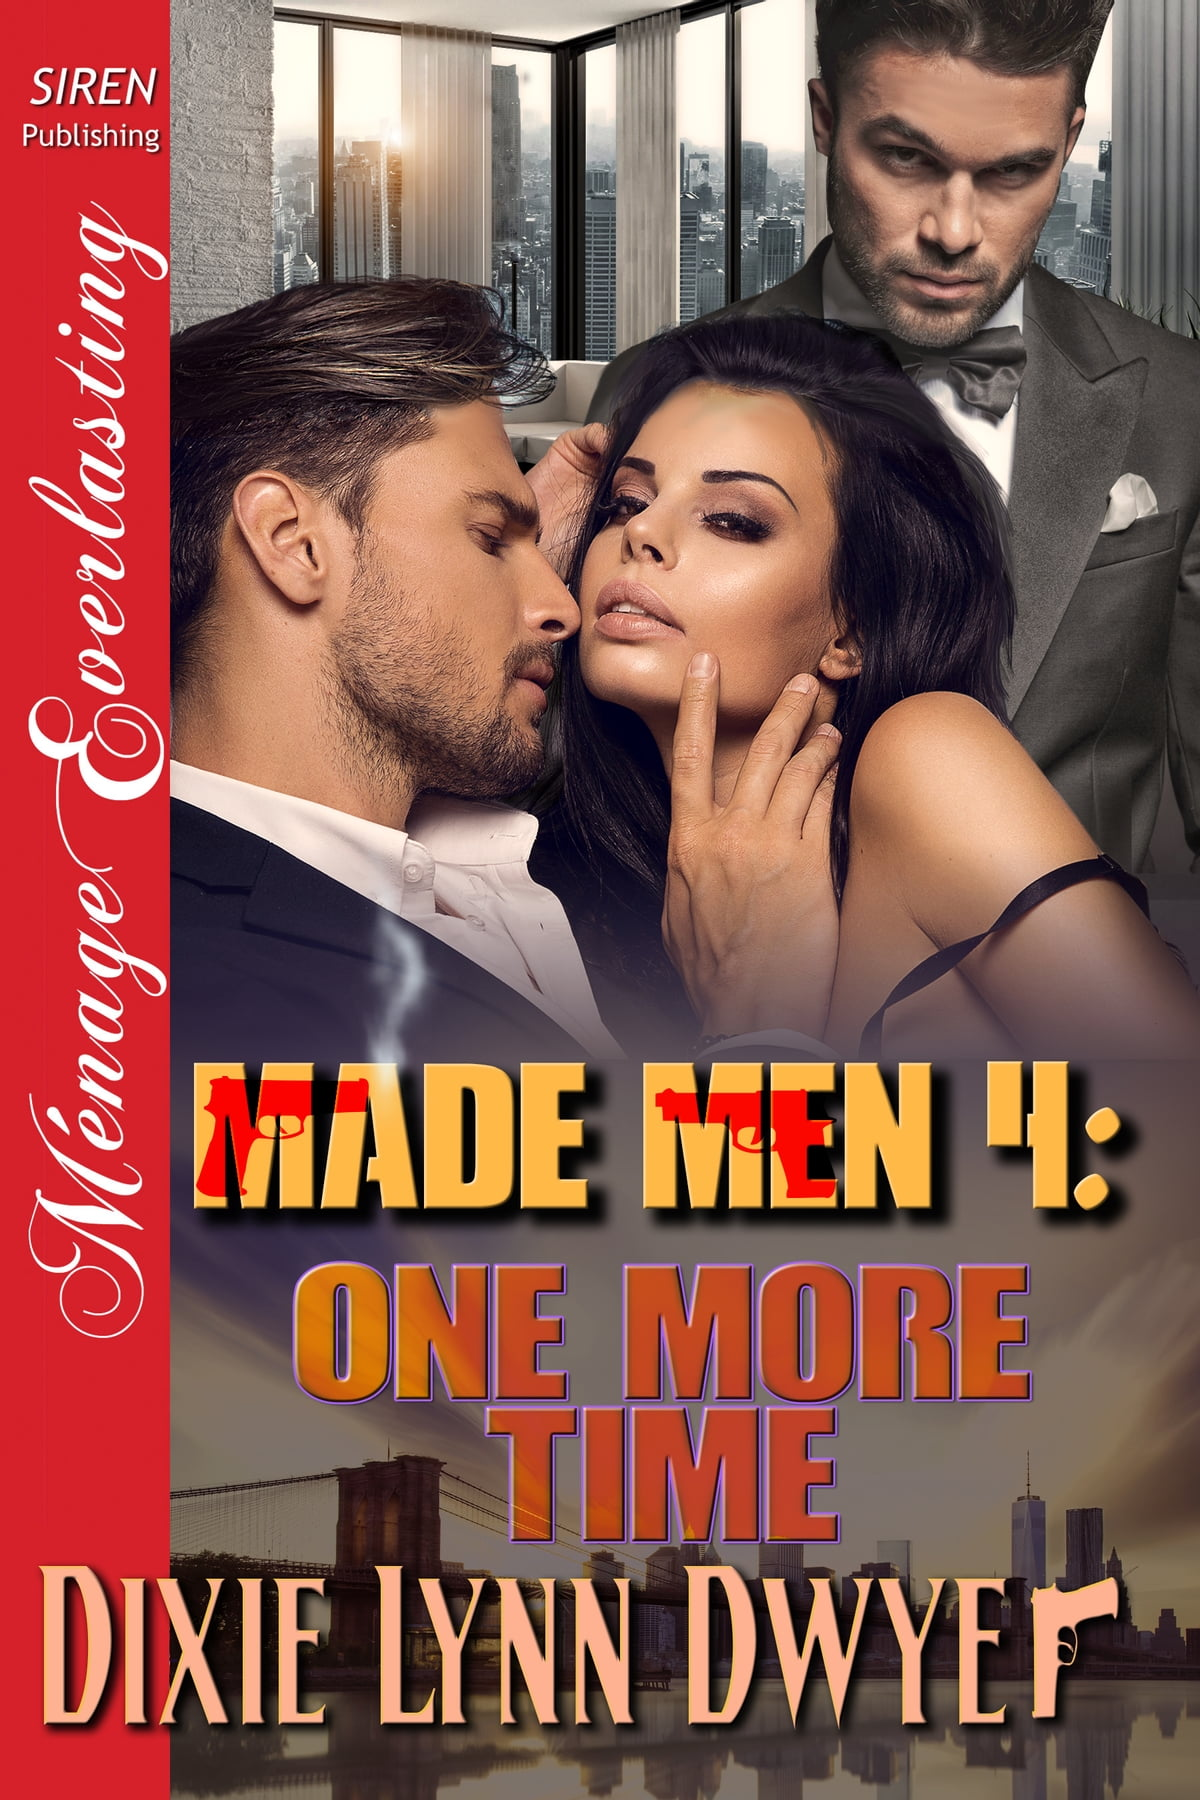 Made Men 4: One More Time Ebook By Dixie Lynn Dwyer  9781640101005   Rakuten Kobo